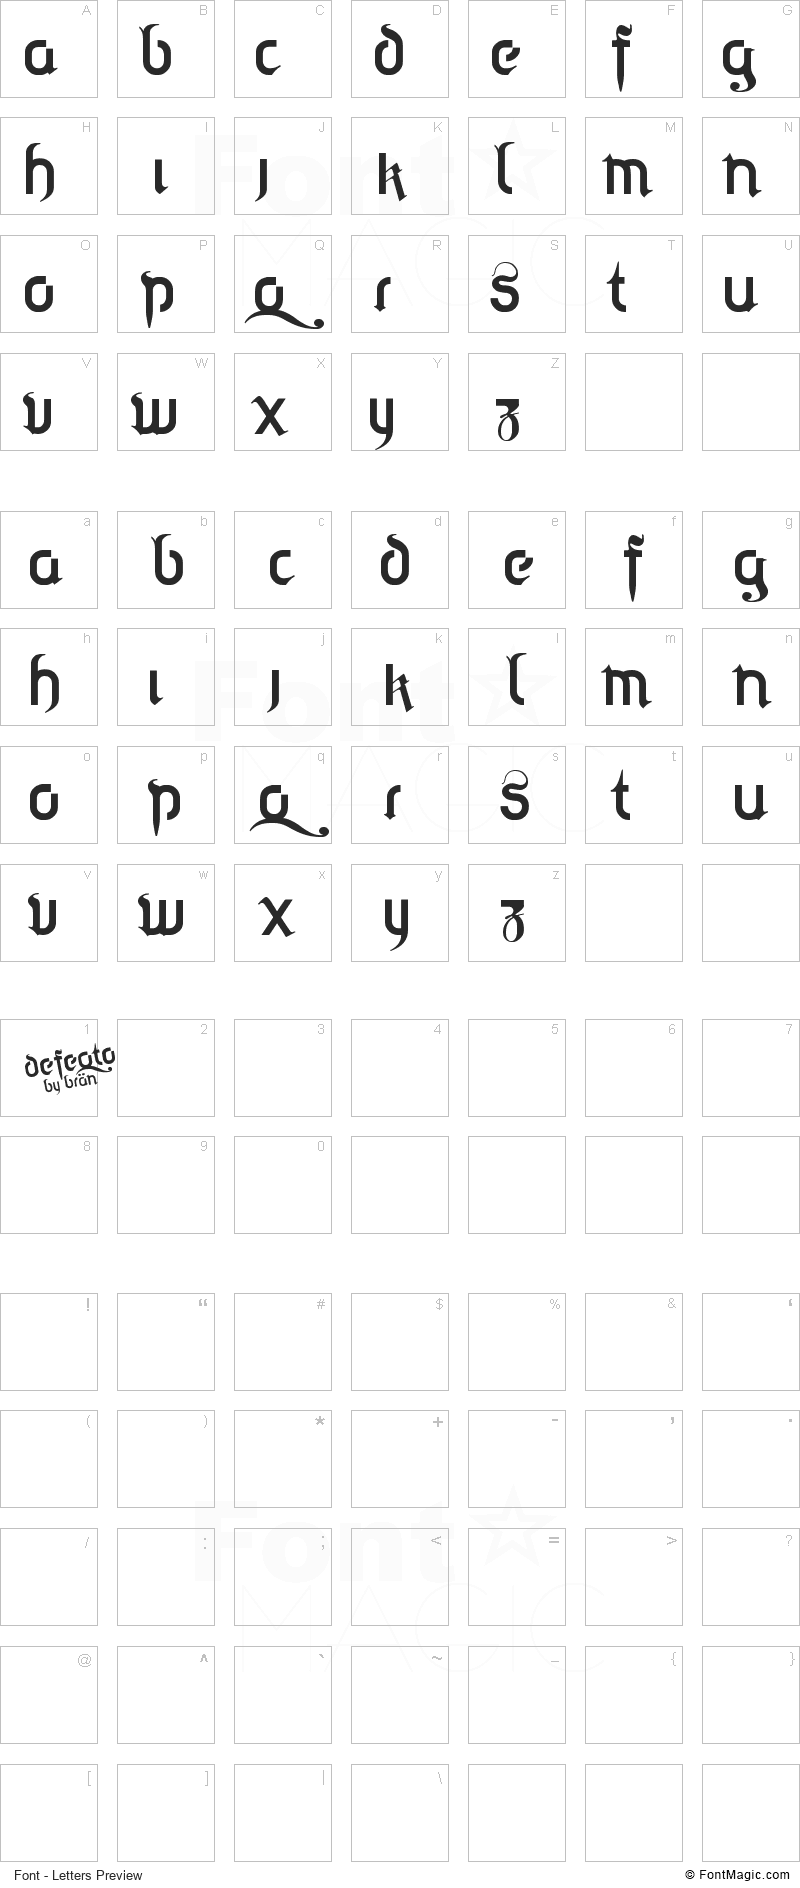 Defeqto Font - All Latters Preview Chart